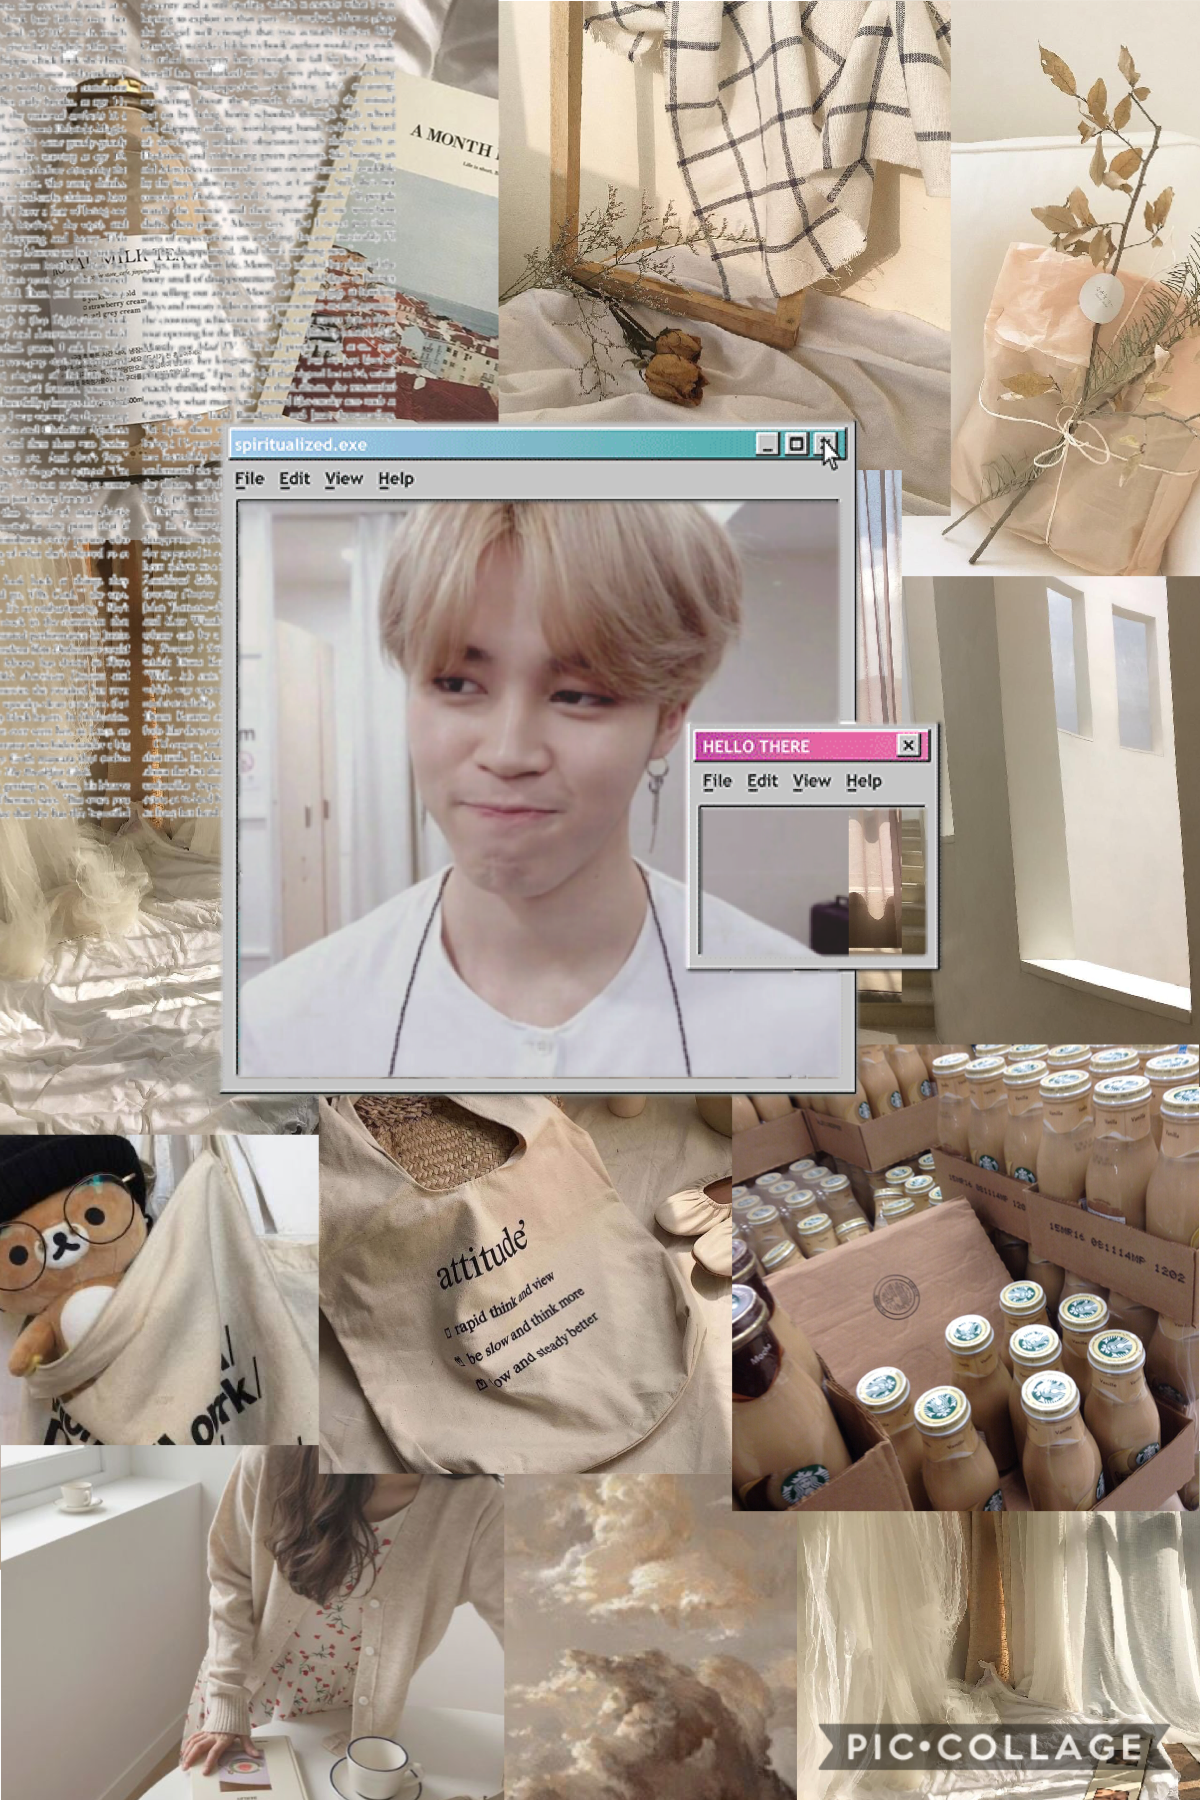 welcome to jimin's cafe, open up ☕️  🐶//park jimin  i dont like this hsjsjshsjhsj it took me like 5 minutes to make but whatever  for my akp friend adamoonchild :D  song of the day: 9 and three quarters (run away) by txt ♪